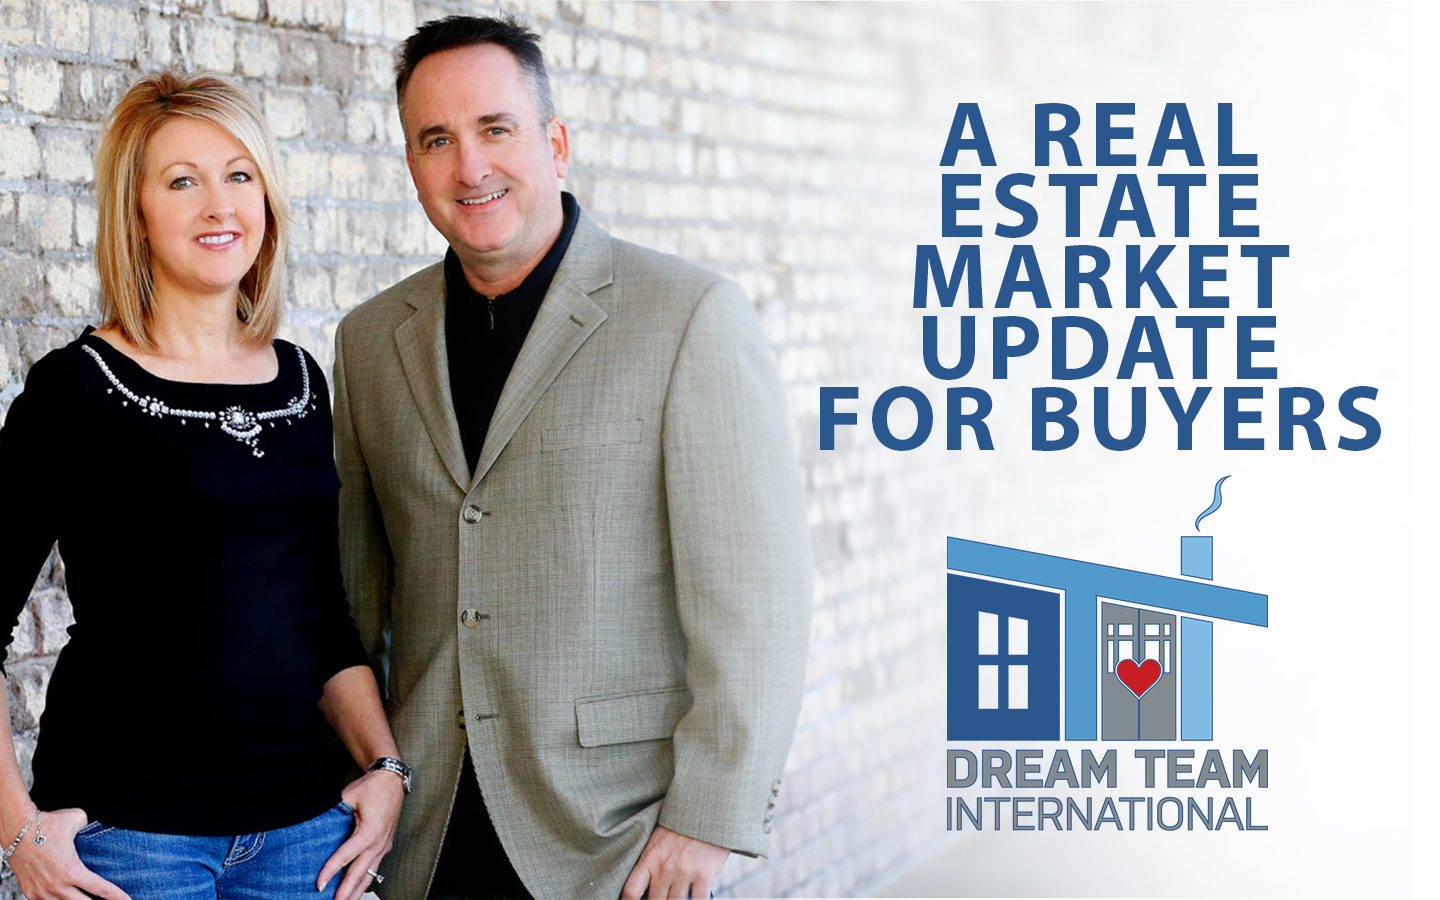 What Should Buyers Know About Our Market?